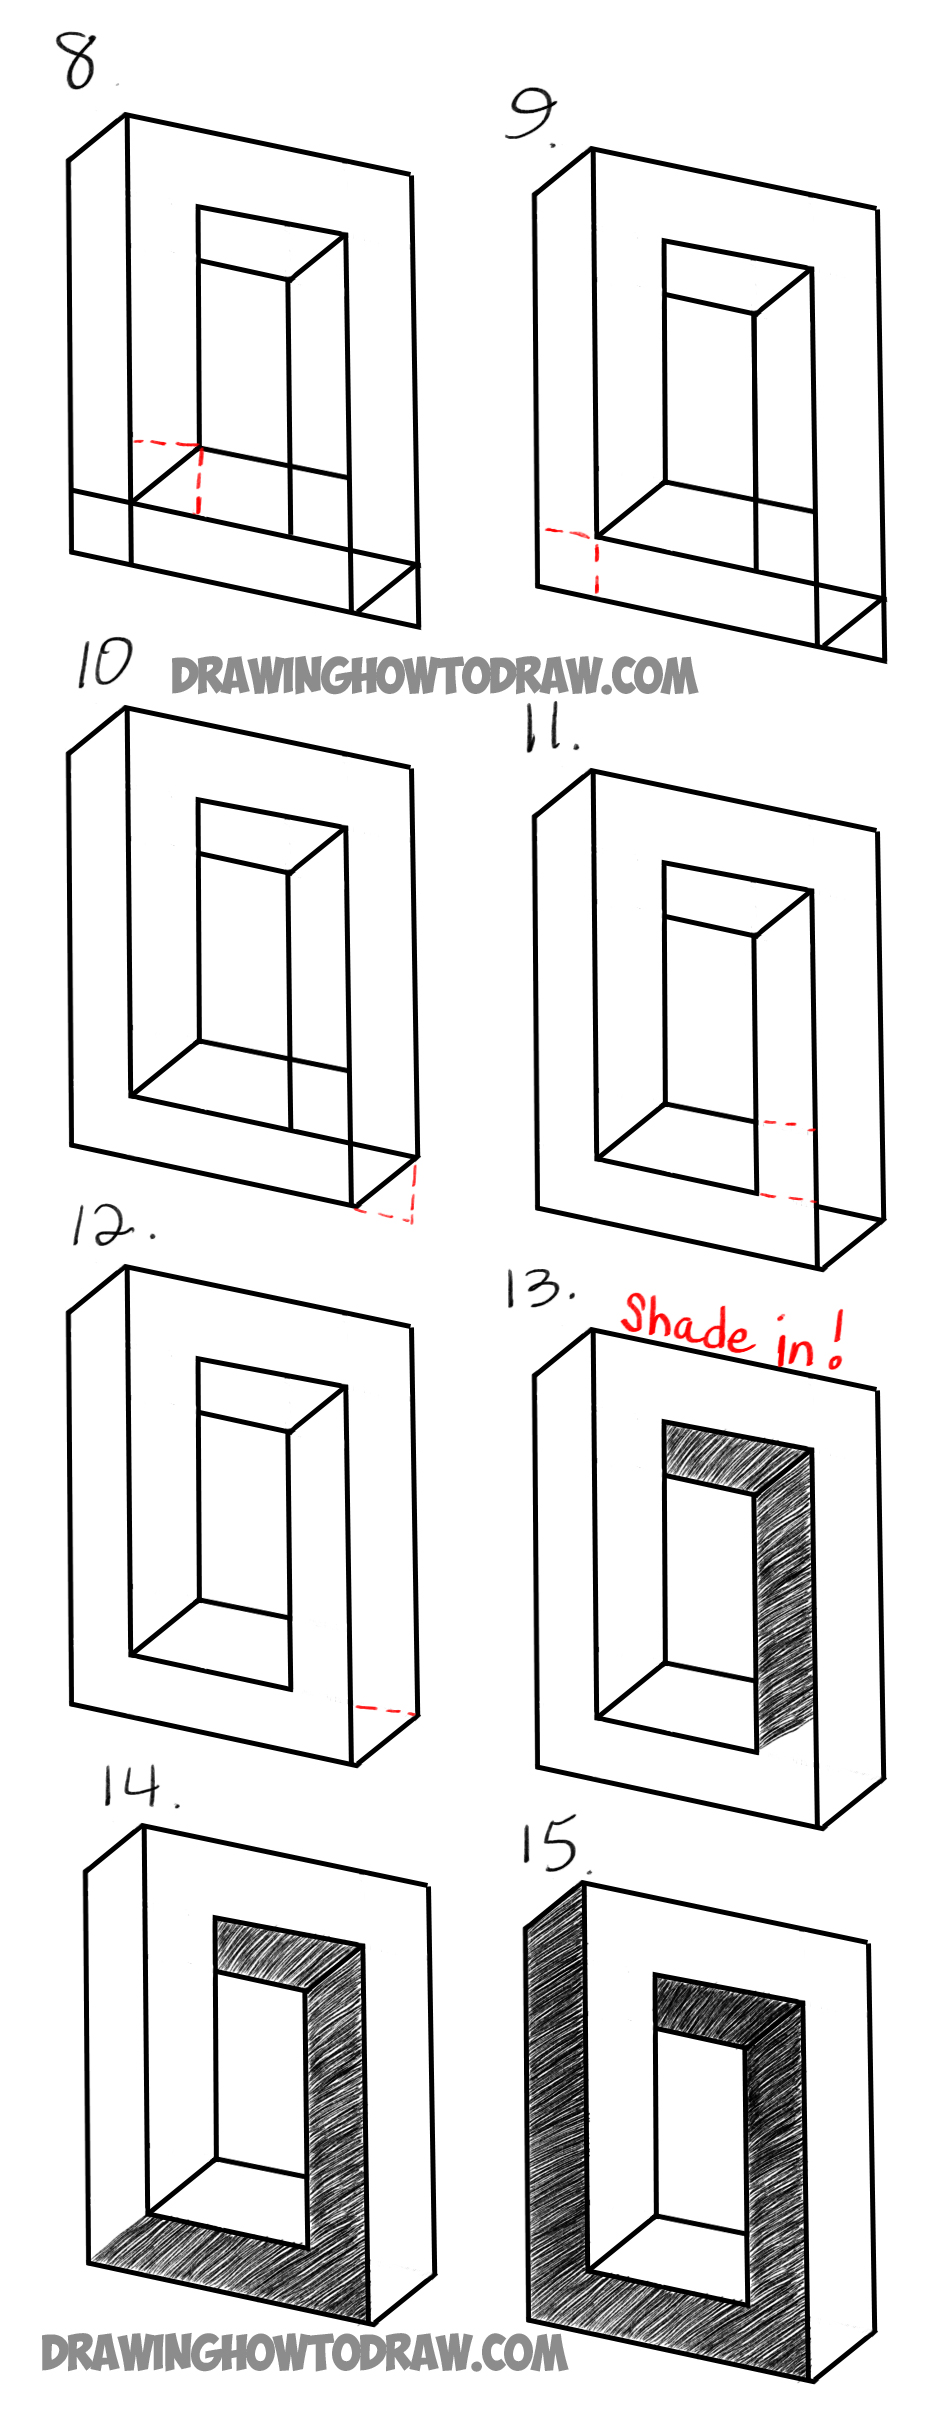 How To Draw An Impossible Square Or Rectangle Easy Step By Step